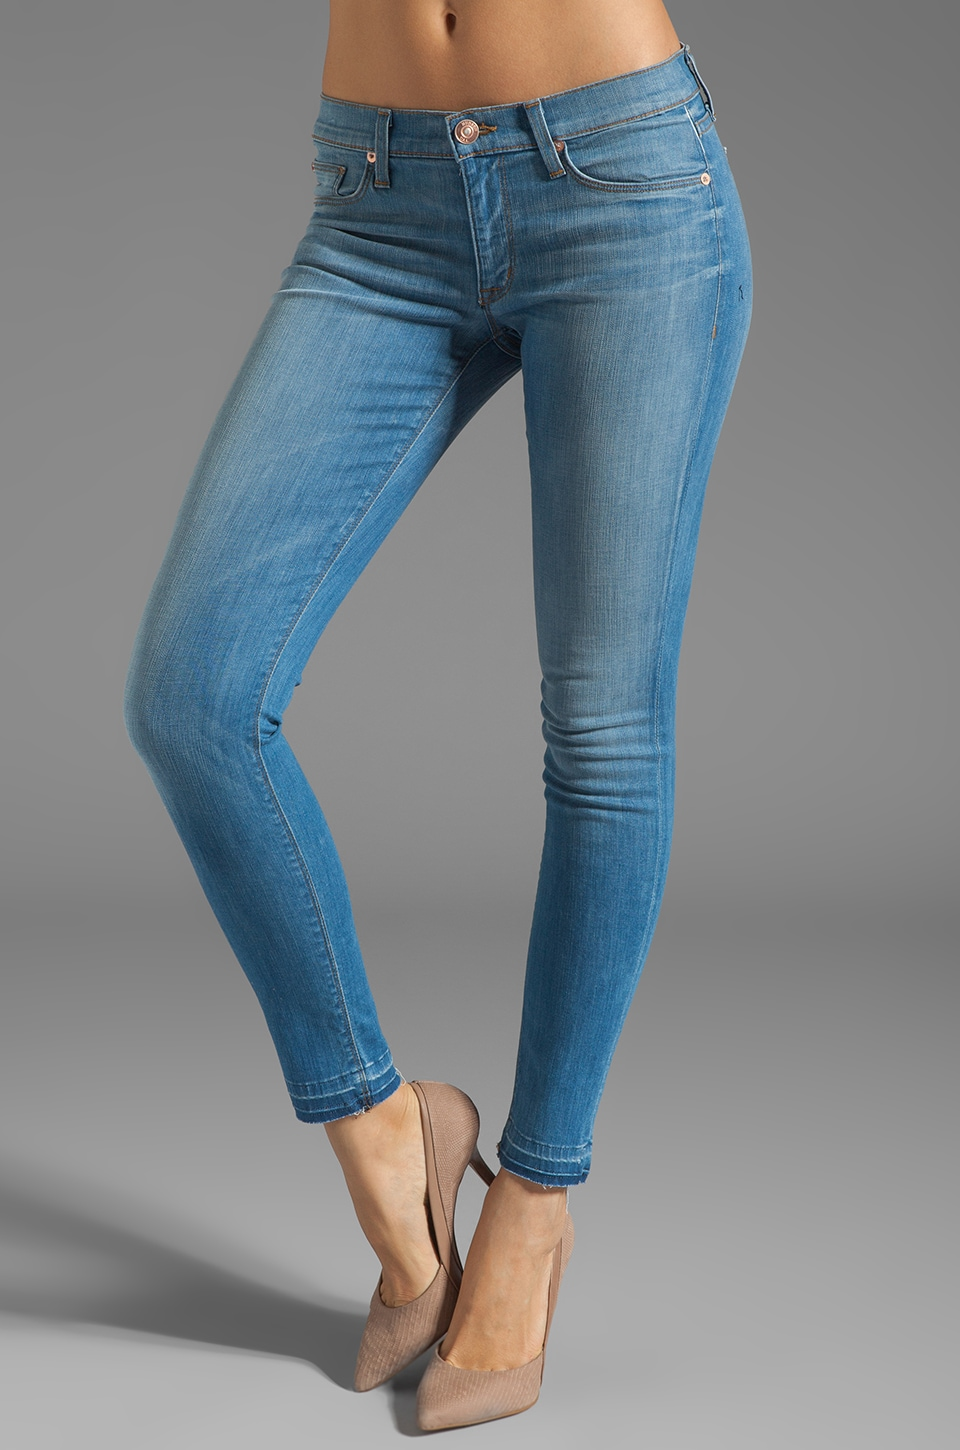 Hudson Jeans Krista Super Skinny in Polly